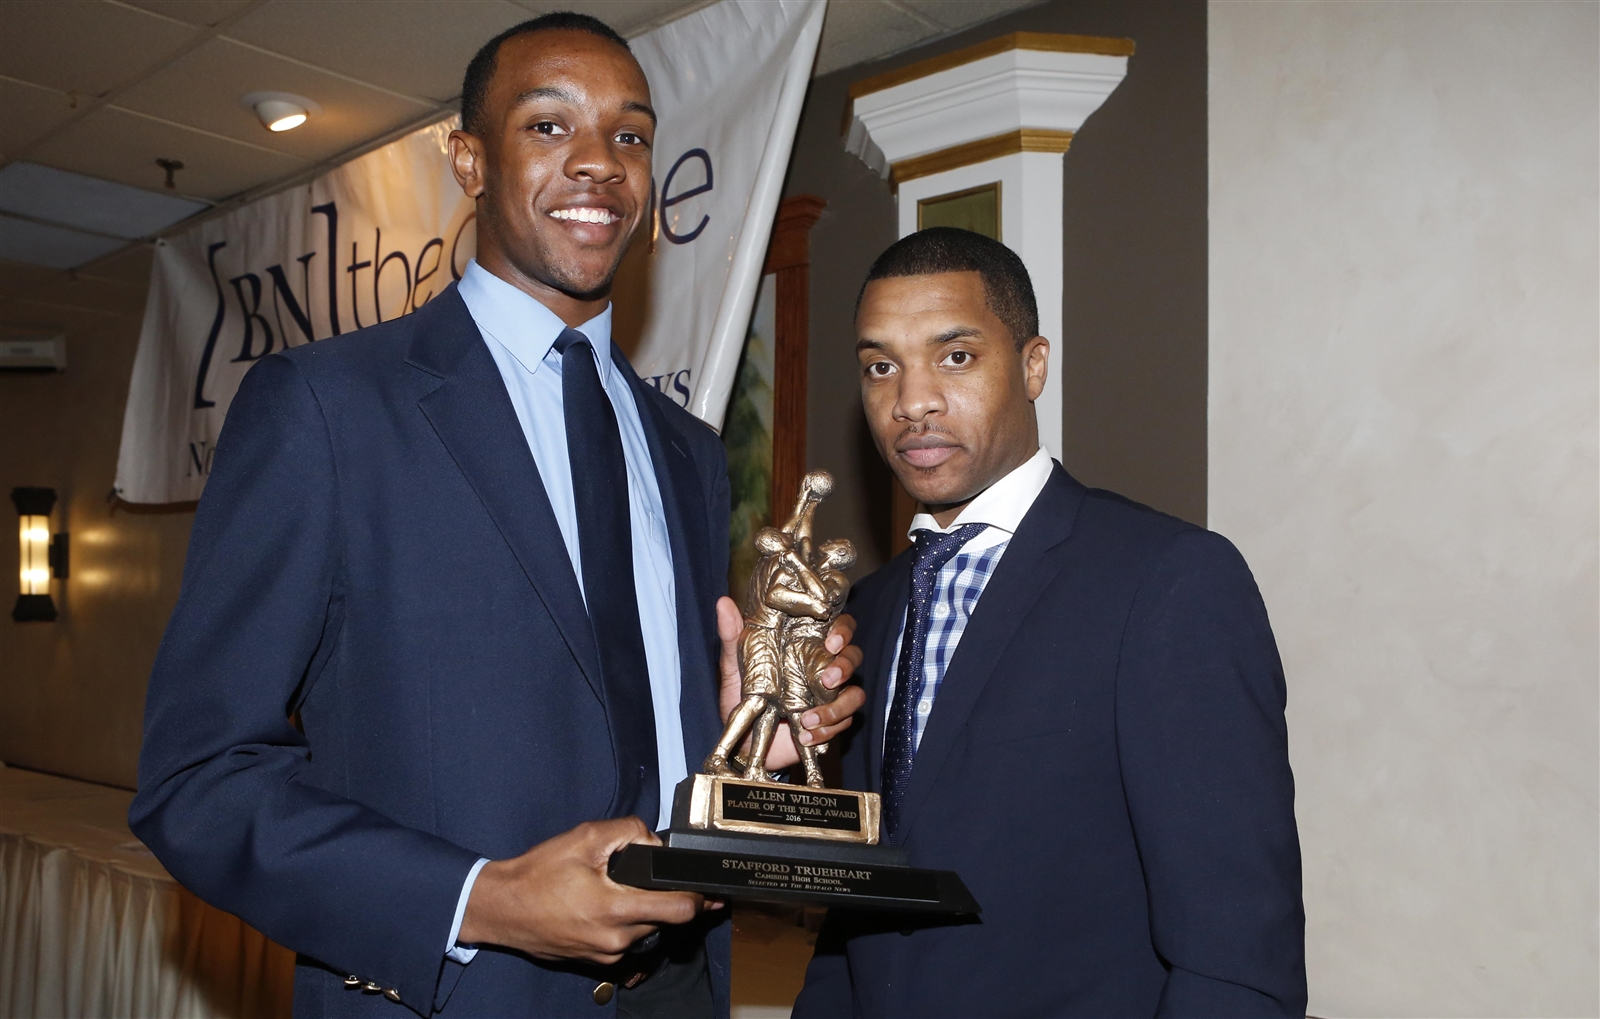 Stafford Trueheart of Canisius is presented the Allen Wilson Player of the Year Award at the 2016 Buffalo News/BCANY Awards. (Dave DeLuca/Special to The News)